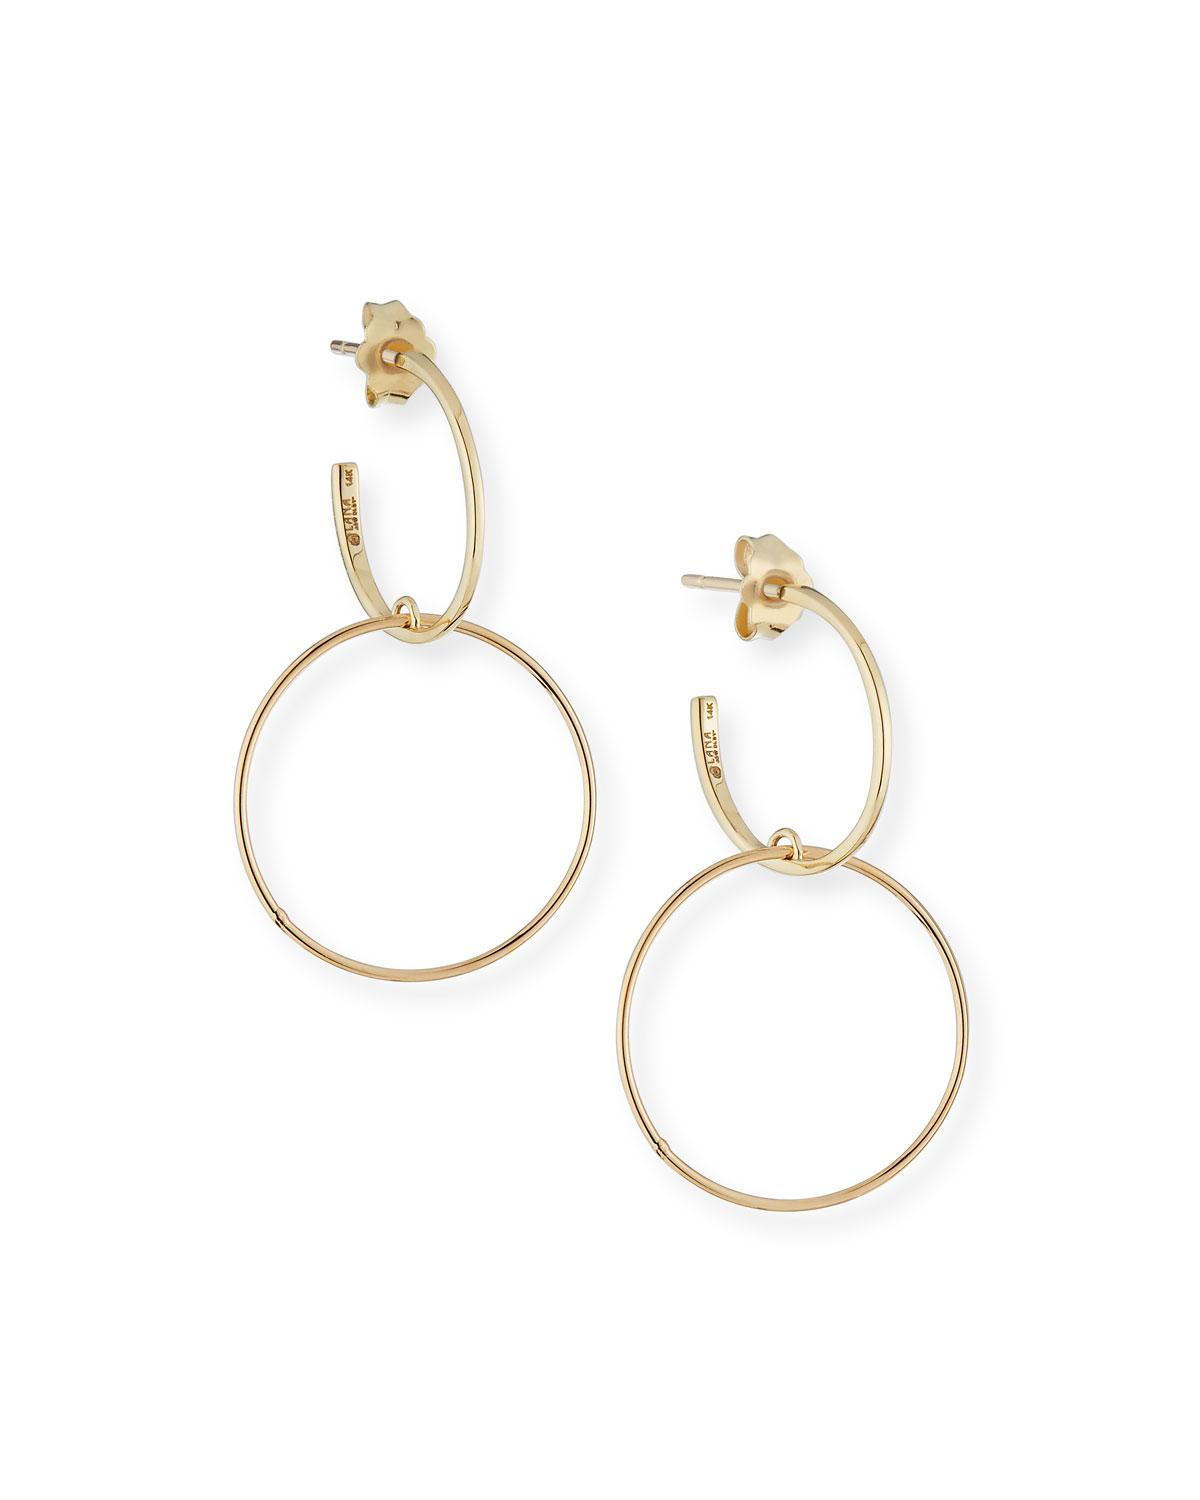 Lana Jewelry Fifteen 14k Double-Hoop Earrings G2re47ujqd